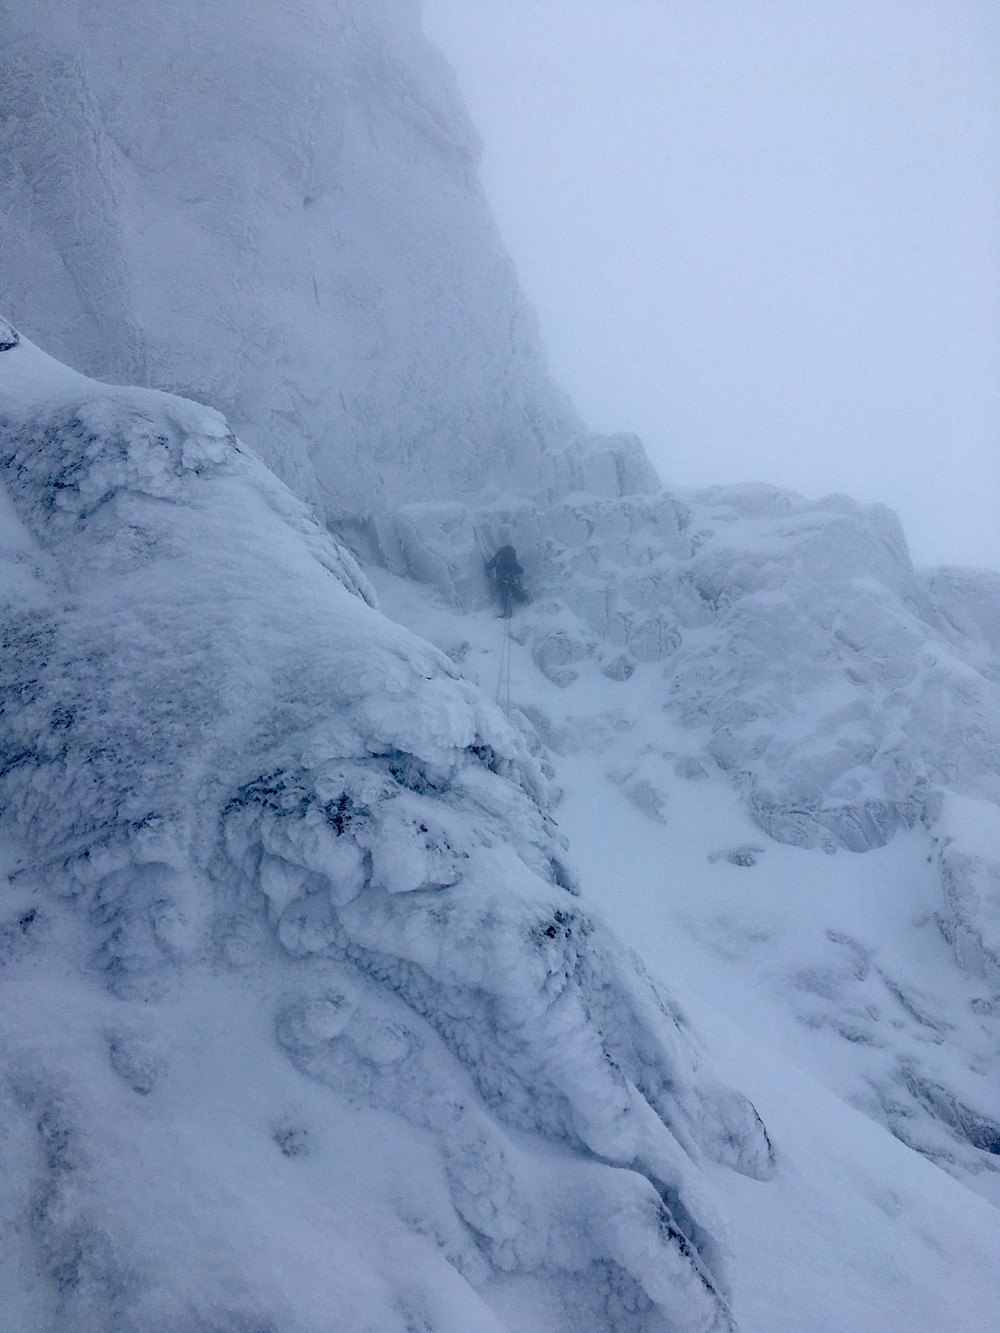 Winter climbing on Number 3 gully buttress on Ben Nevis north face